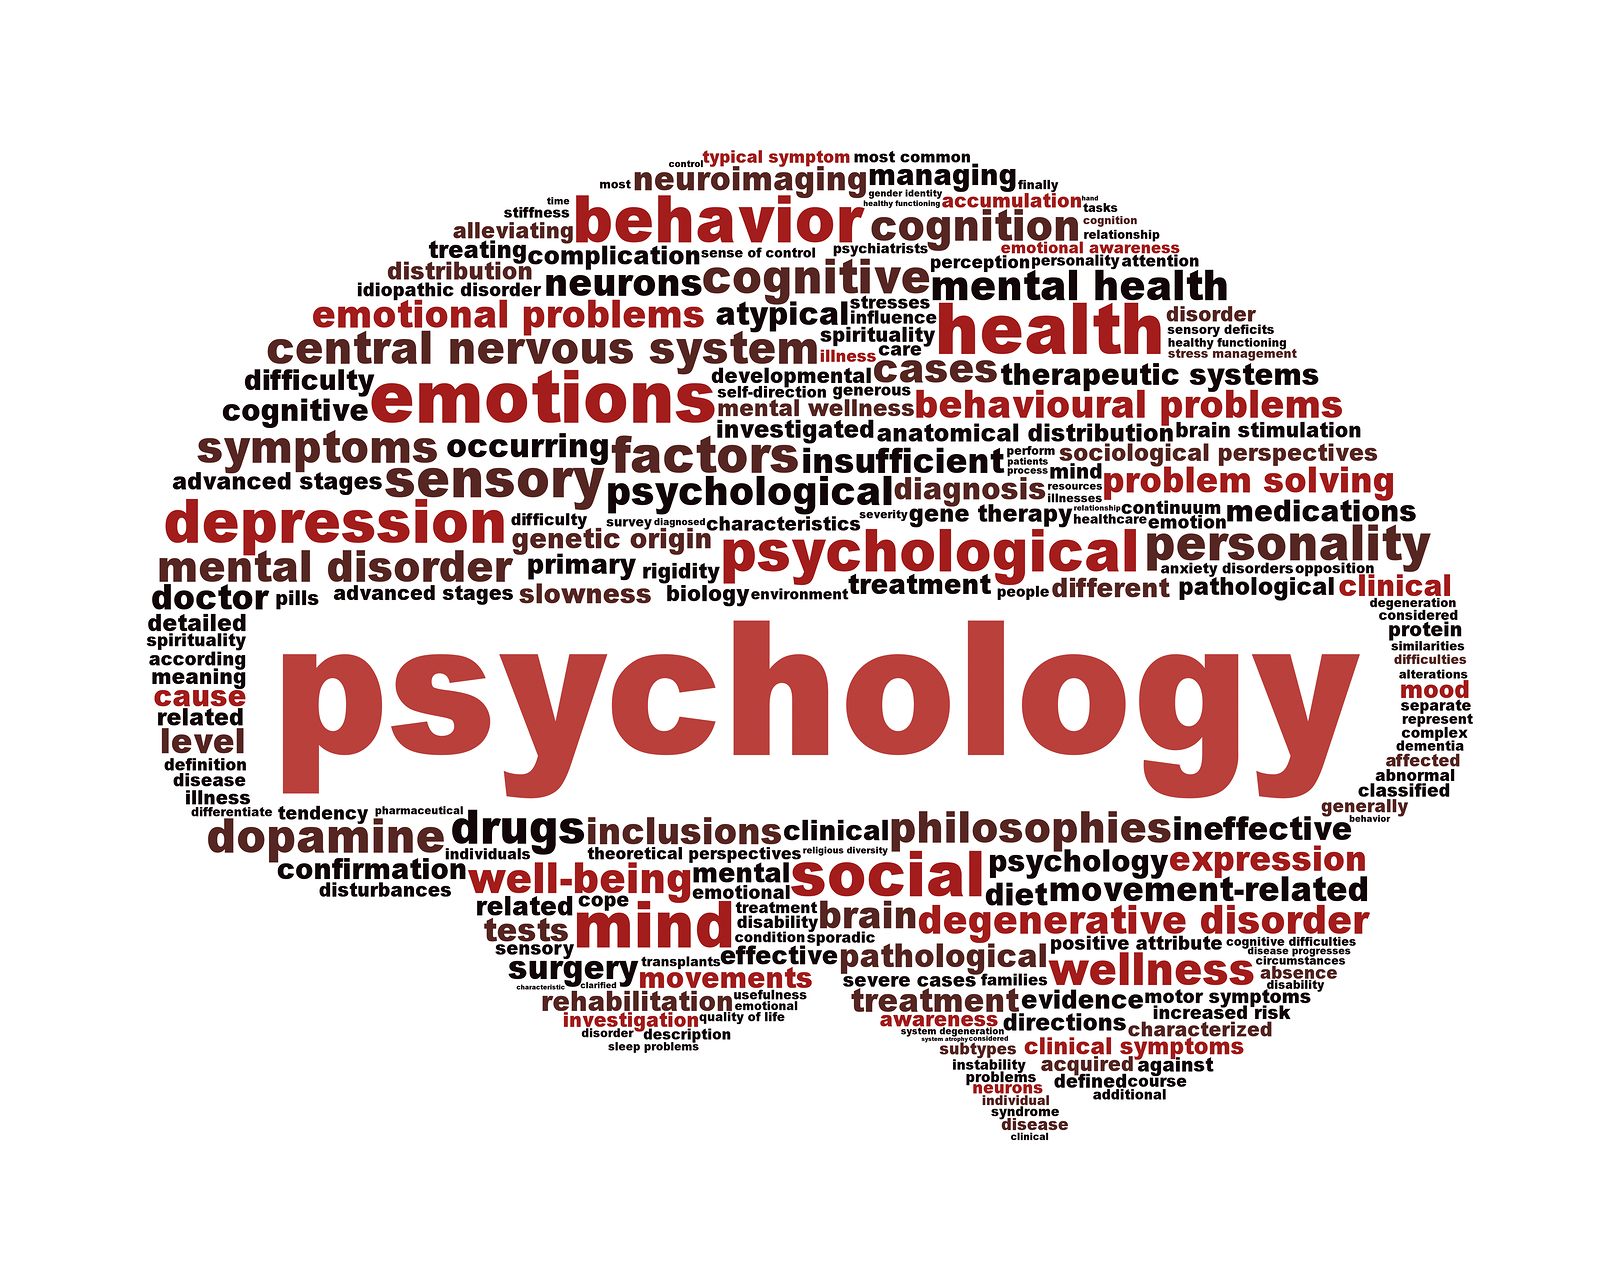 Mental Health Assessment and Treatment in St. George, Utah